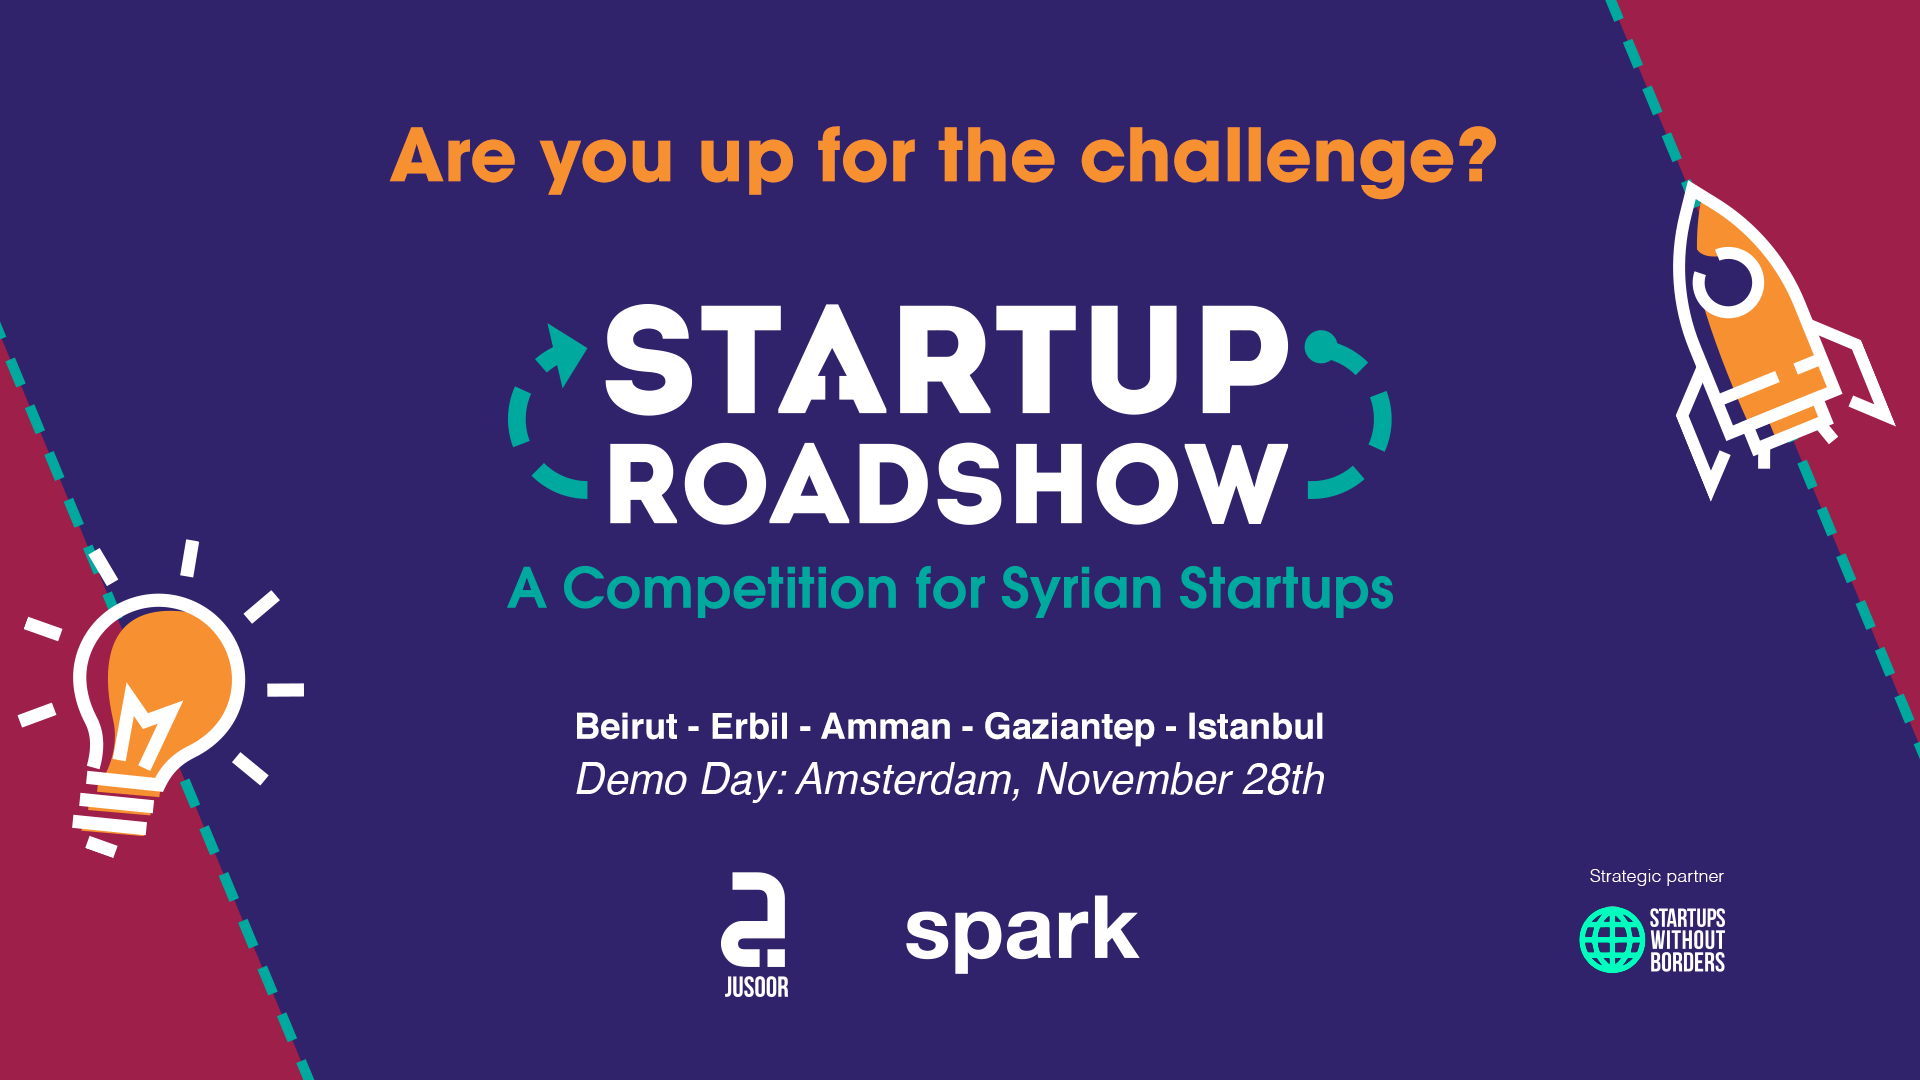 The Startup Roadshow is Gathering Syrian Entrepreneurs Across 5 Cities to Support Refugee-Led Startups